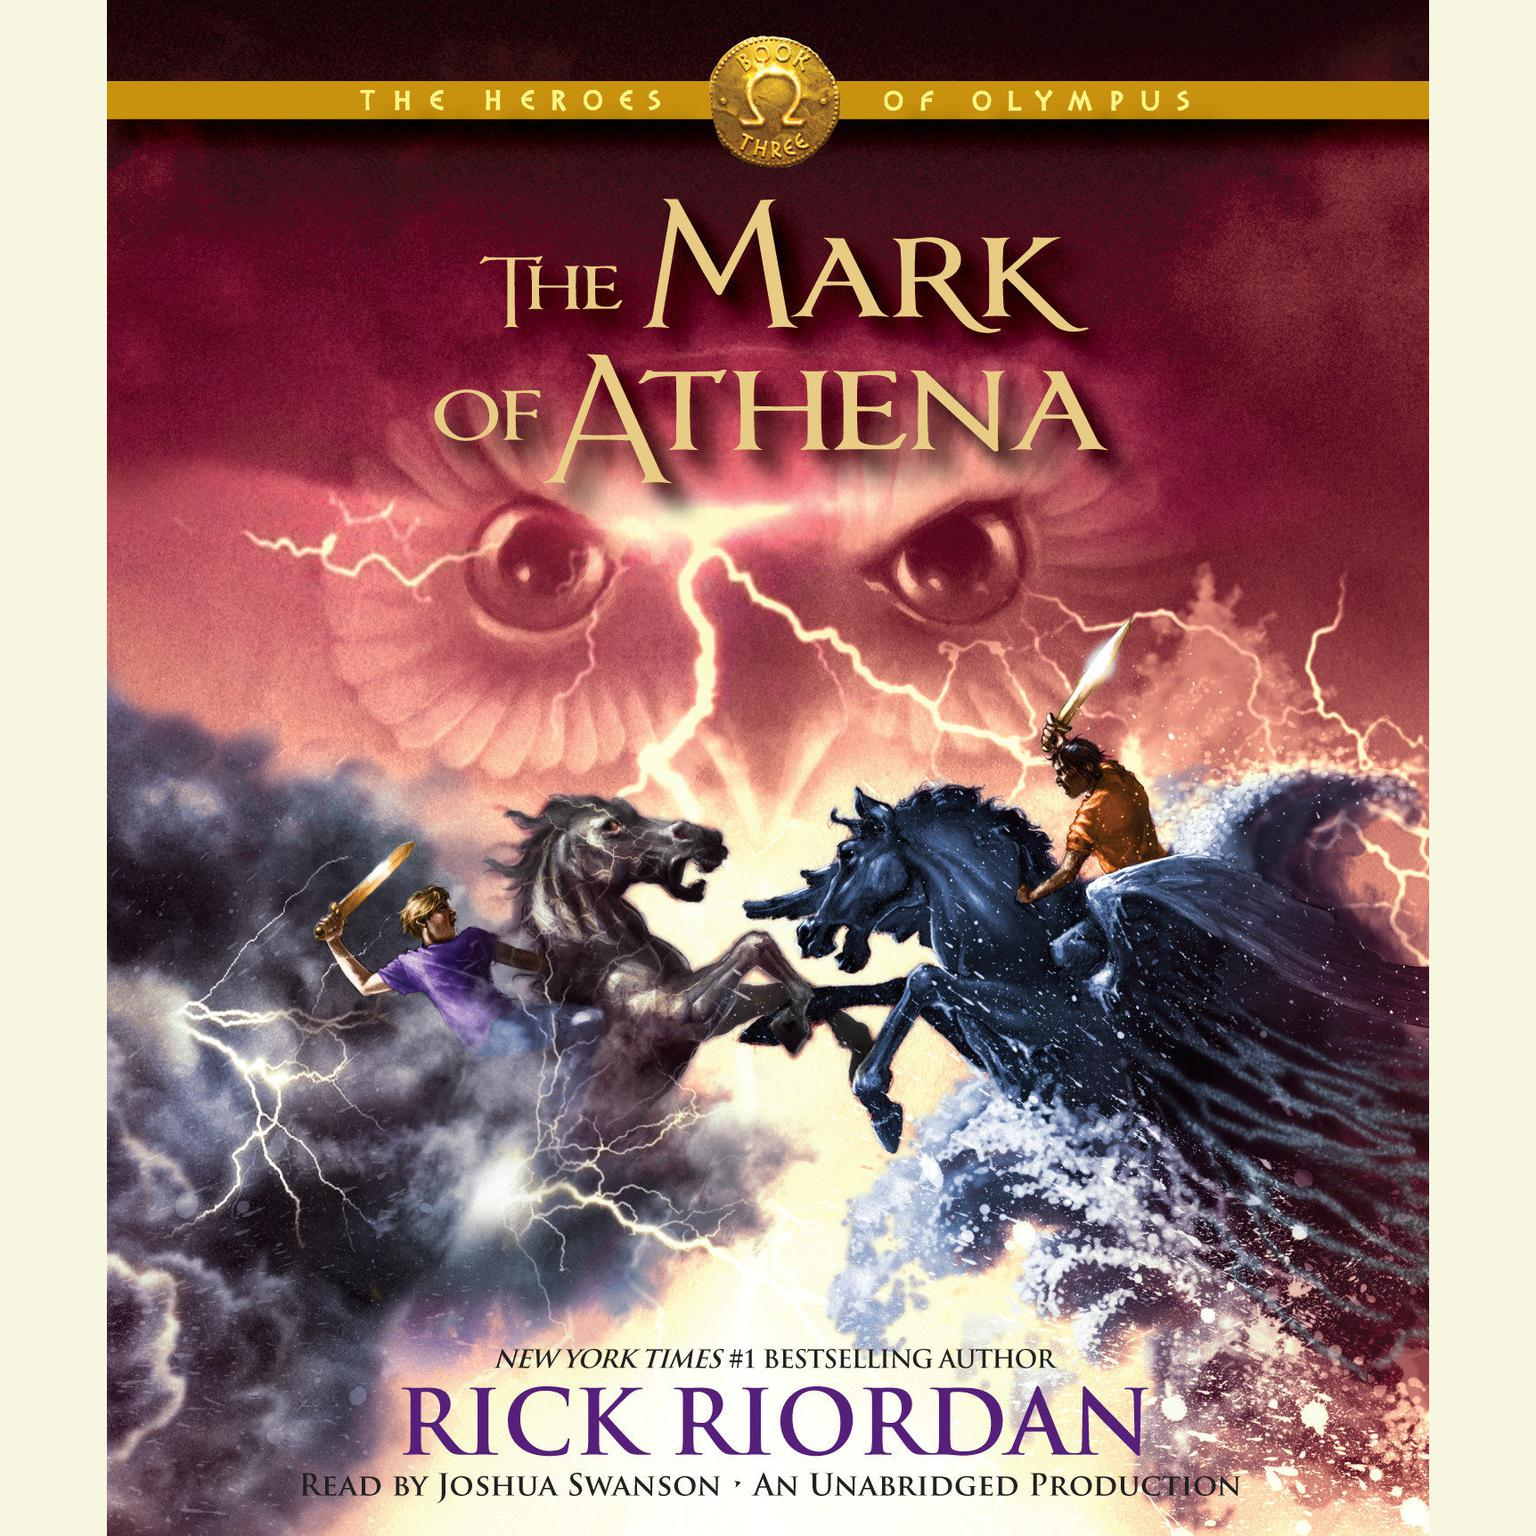 Printable The Heroes of Olympus, Book Three: The Mark of Athena Audiobook Cover Art